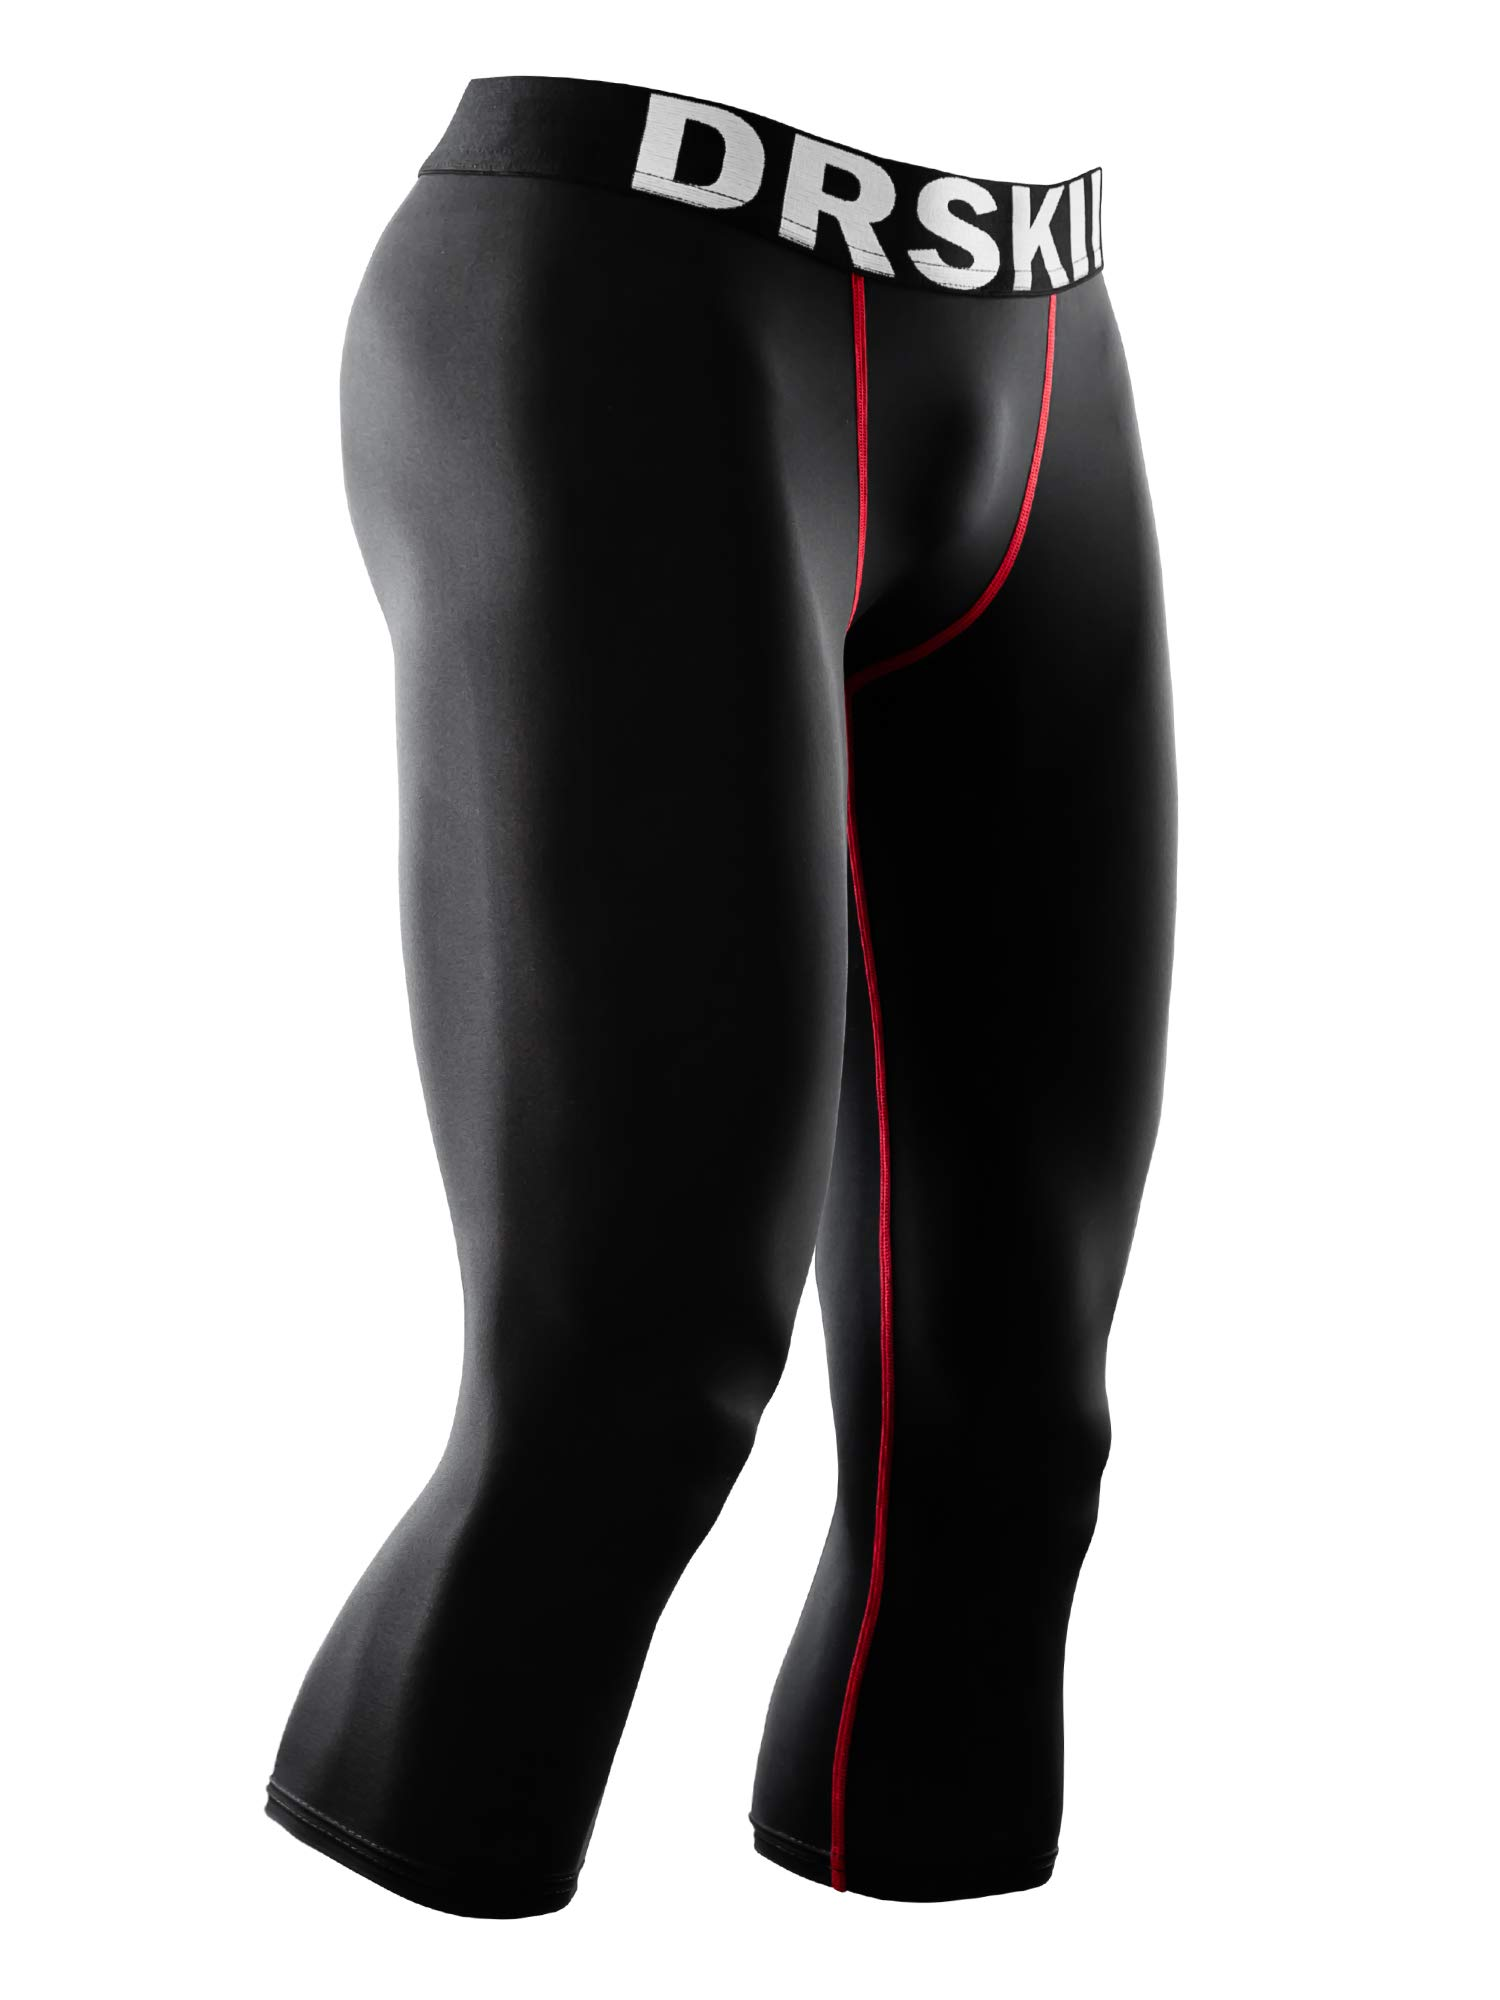 DRSKIN Men's 3/4 Compression Tight Pants Base Under Layer Running Shorts Warm Cool Dry (Line BR806, L) by DRSKIN